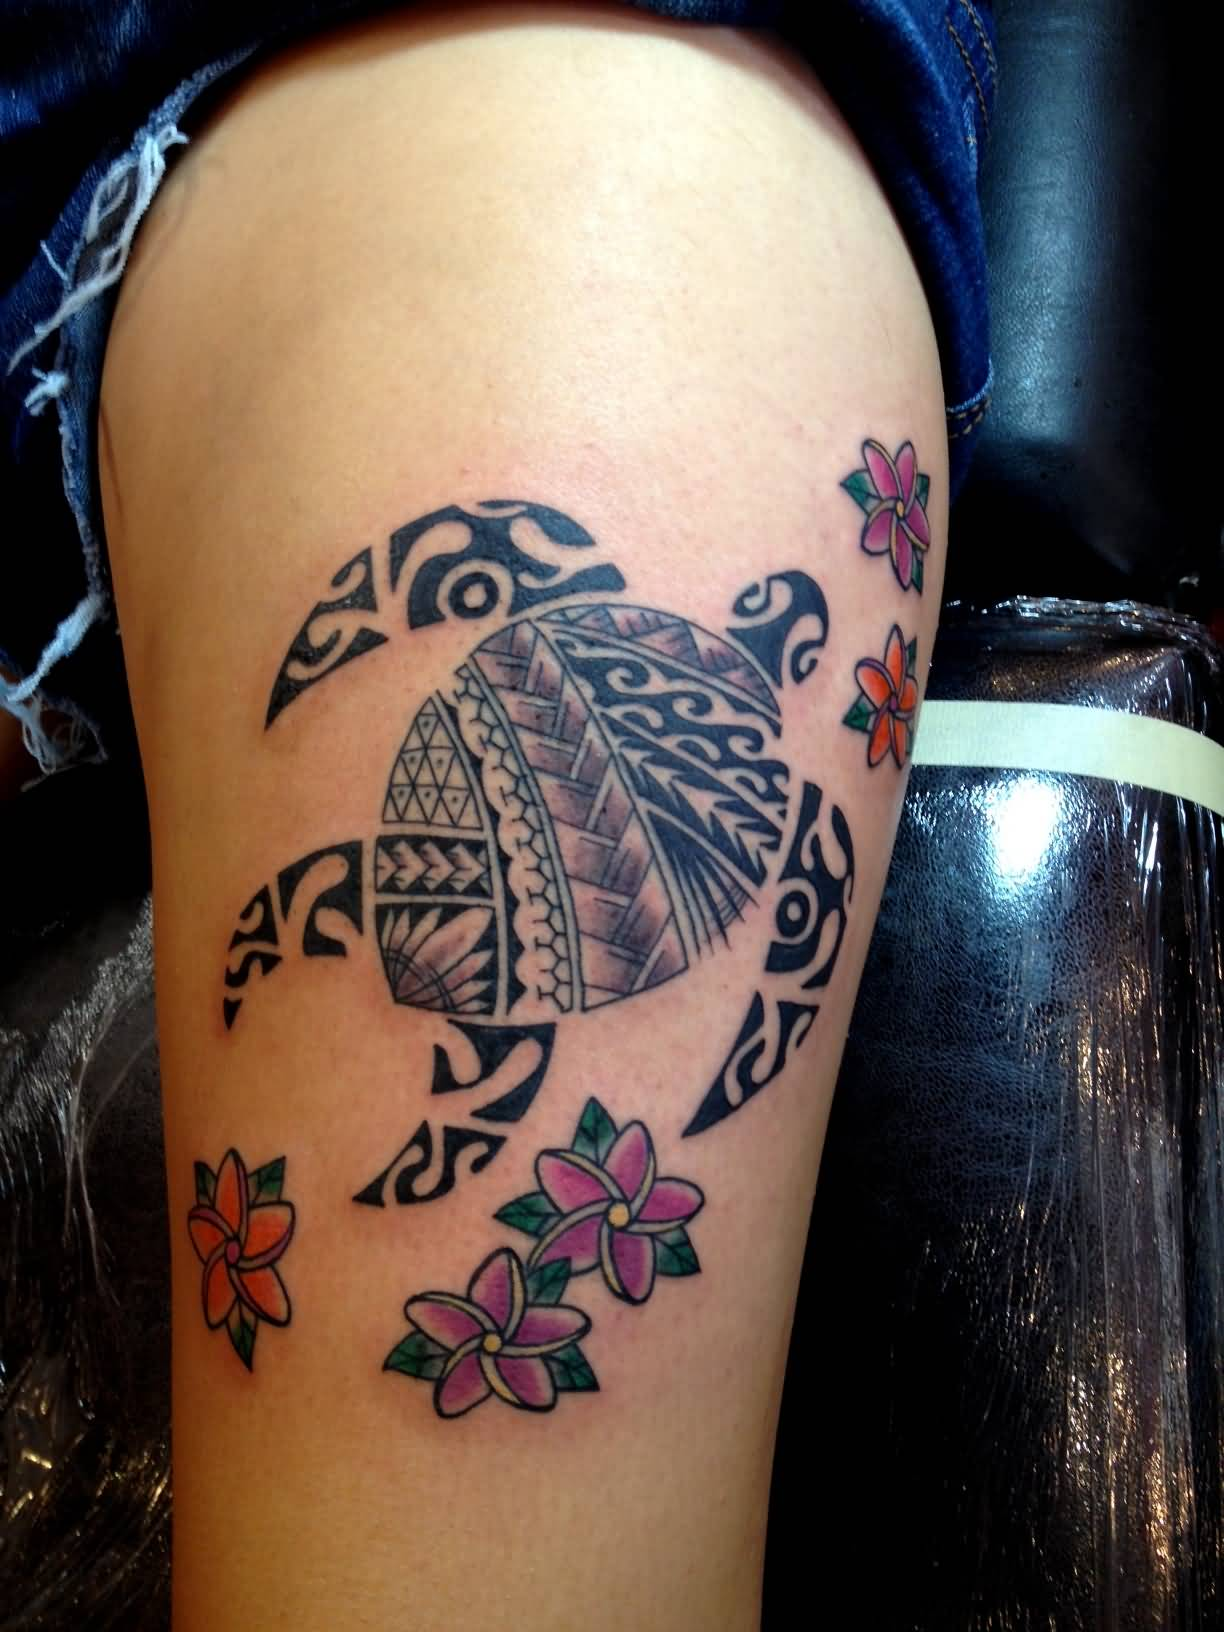 50 awesome tribal turtle tattoos designs awesome hawaiian tribal turtle with flowers tattoo izmirmasajfo